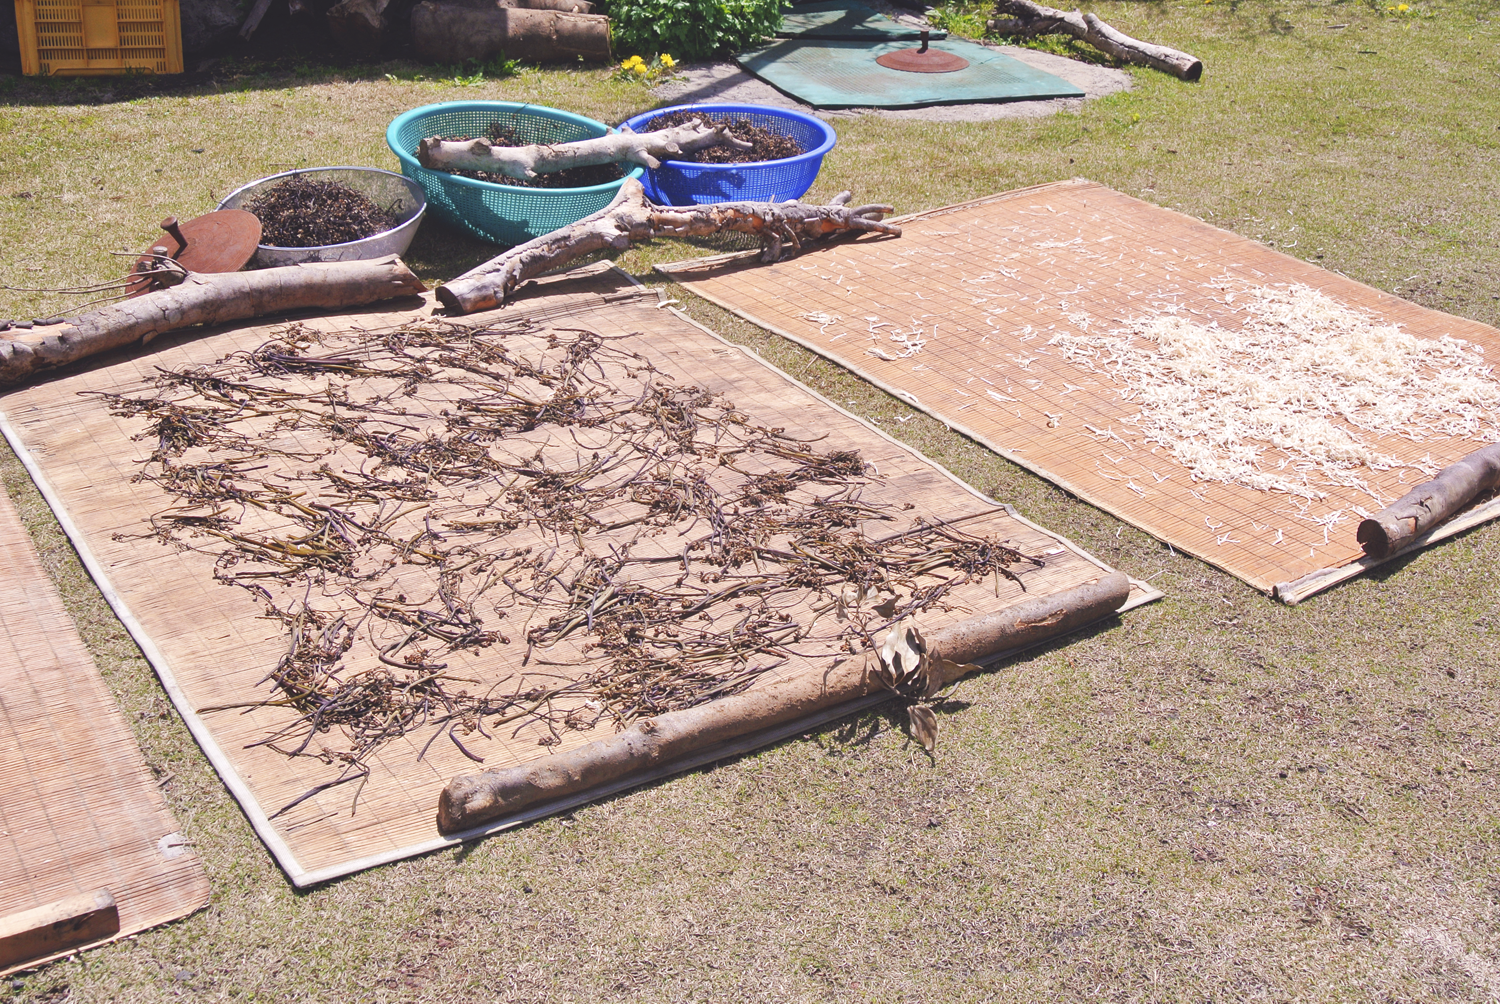 Gosari, Korean fern bracken, laid out to dry in the spring sun of Jeju Island.